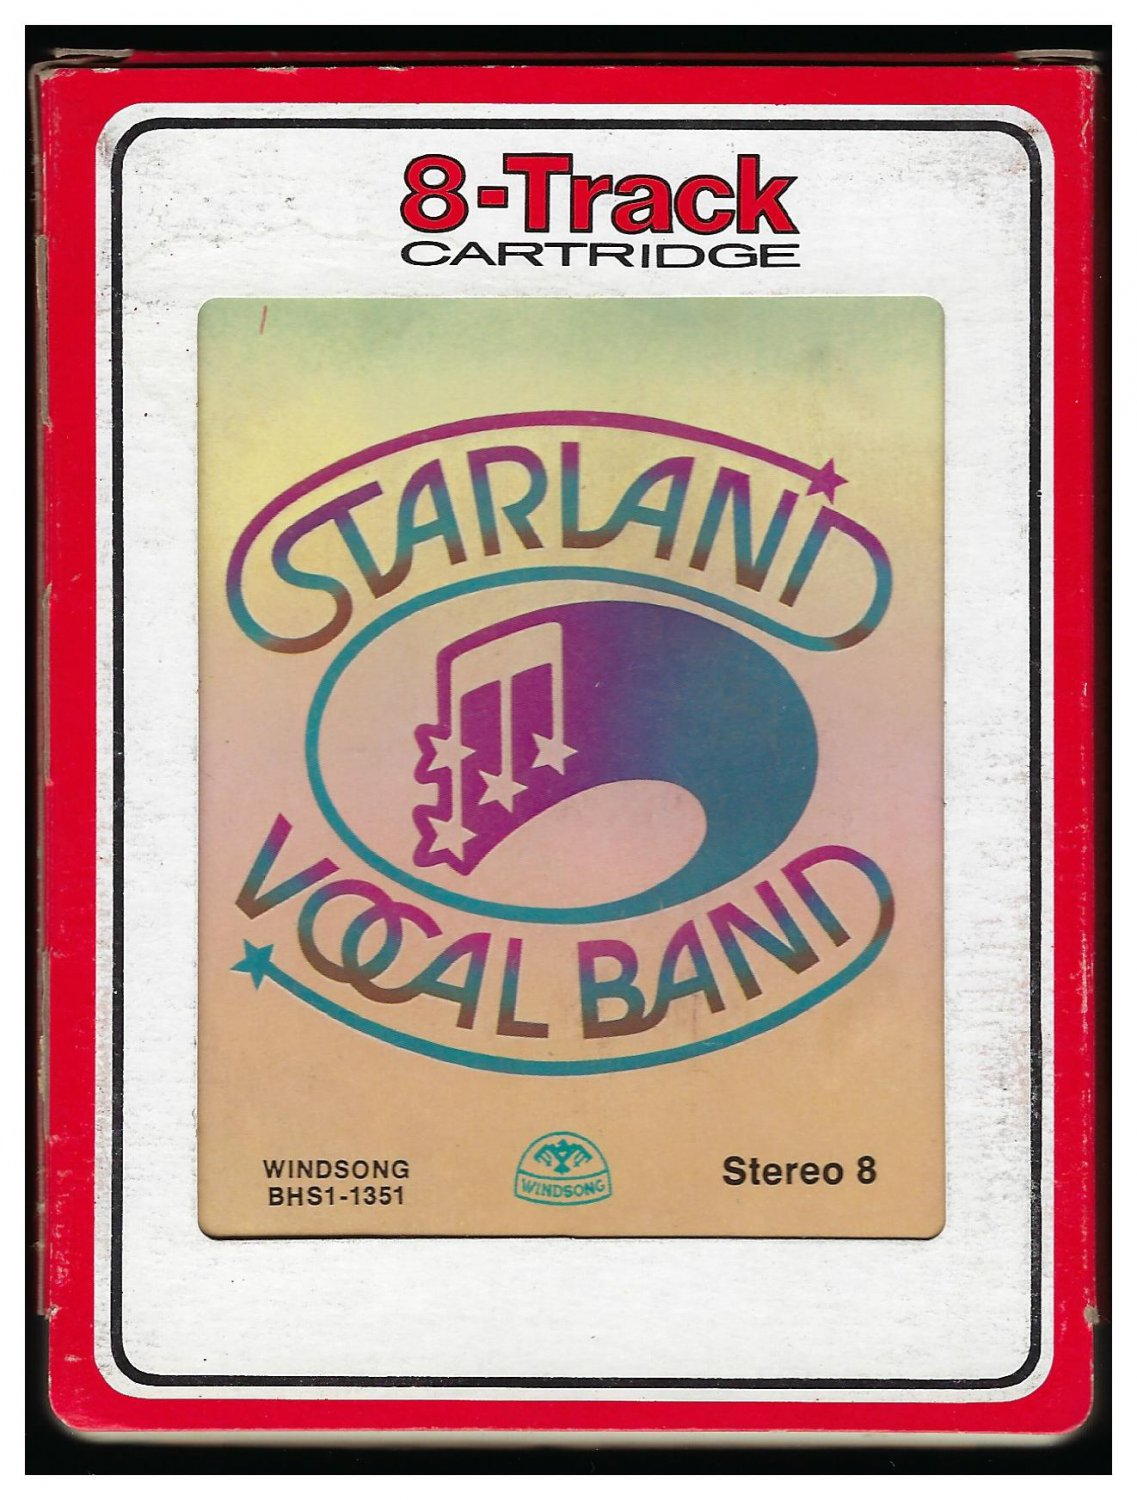 Starland Vocal Band - Starland Vocal Band 1976 Debut RCA WINDSONG A23 8-TRACK TAPE